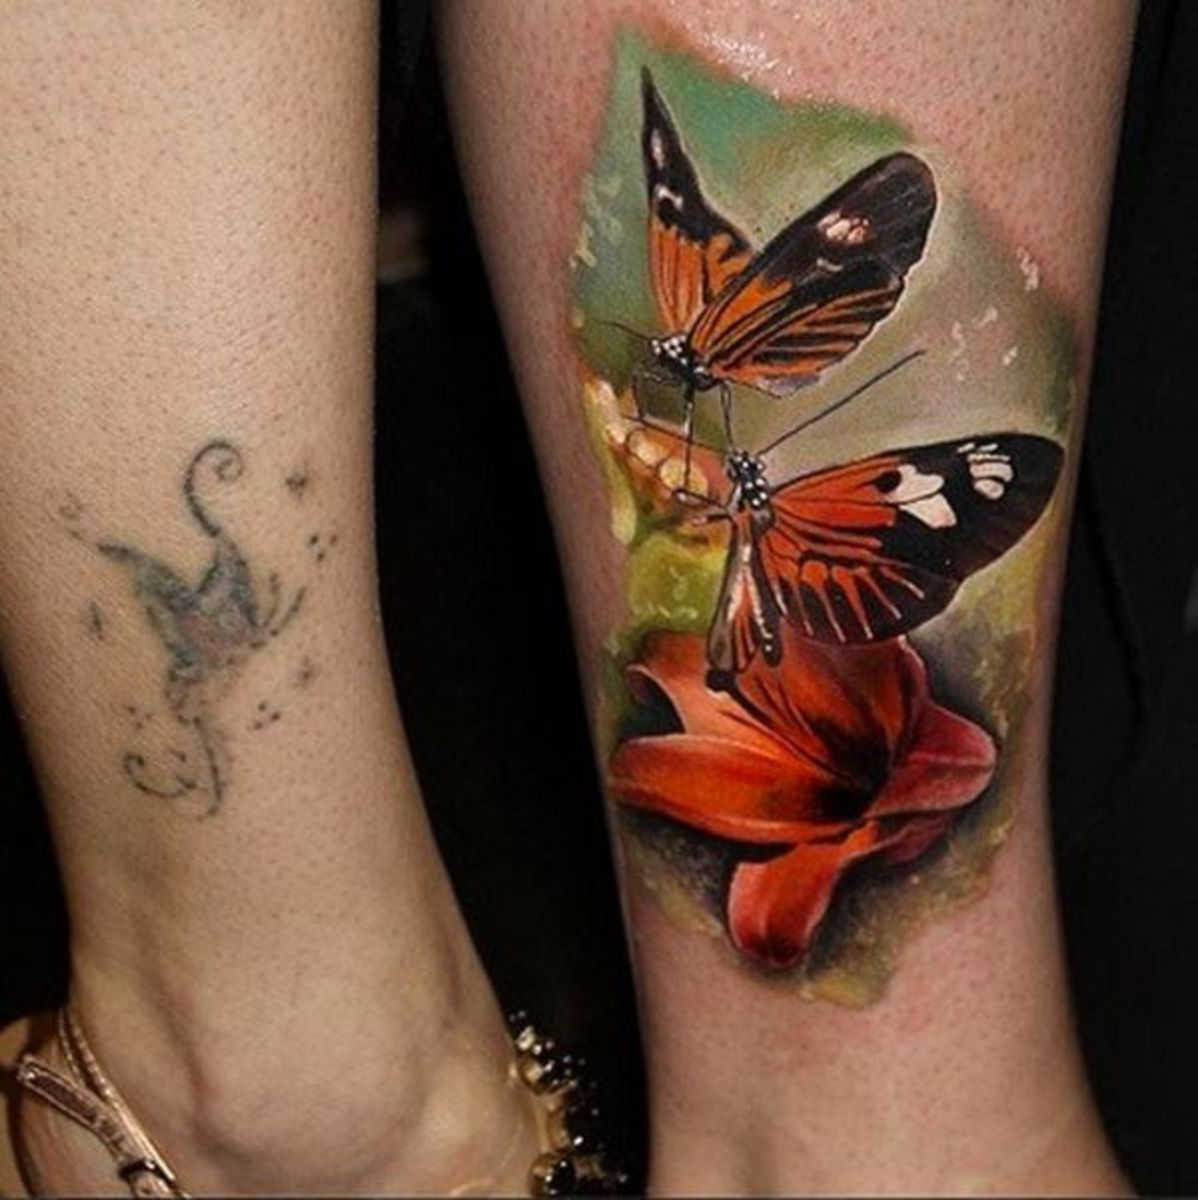 Cover Up Tattoos - Tattoo Ideas, Artists and Models